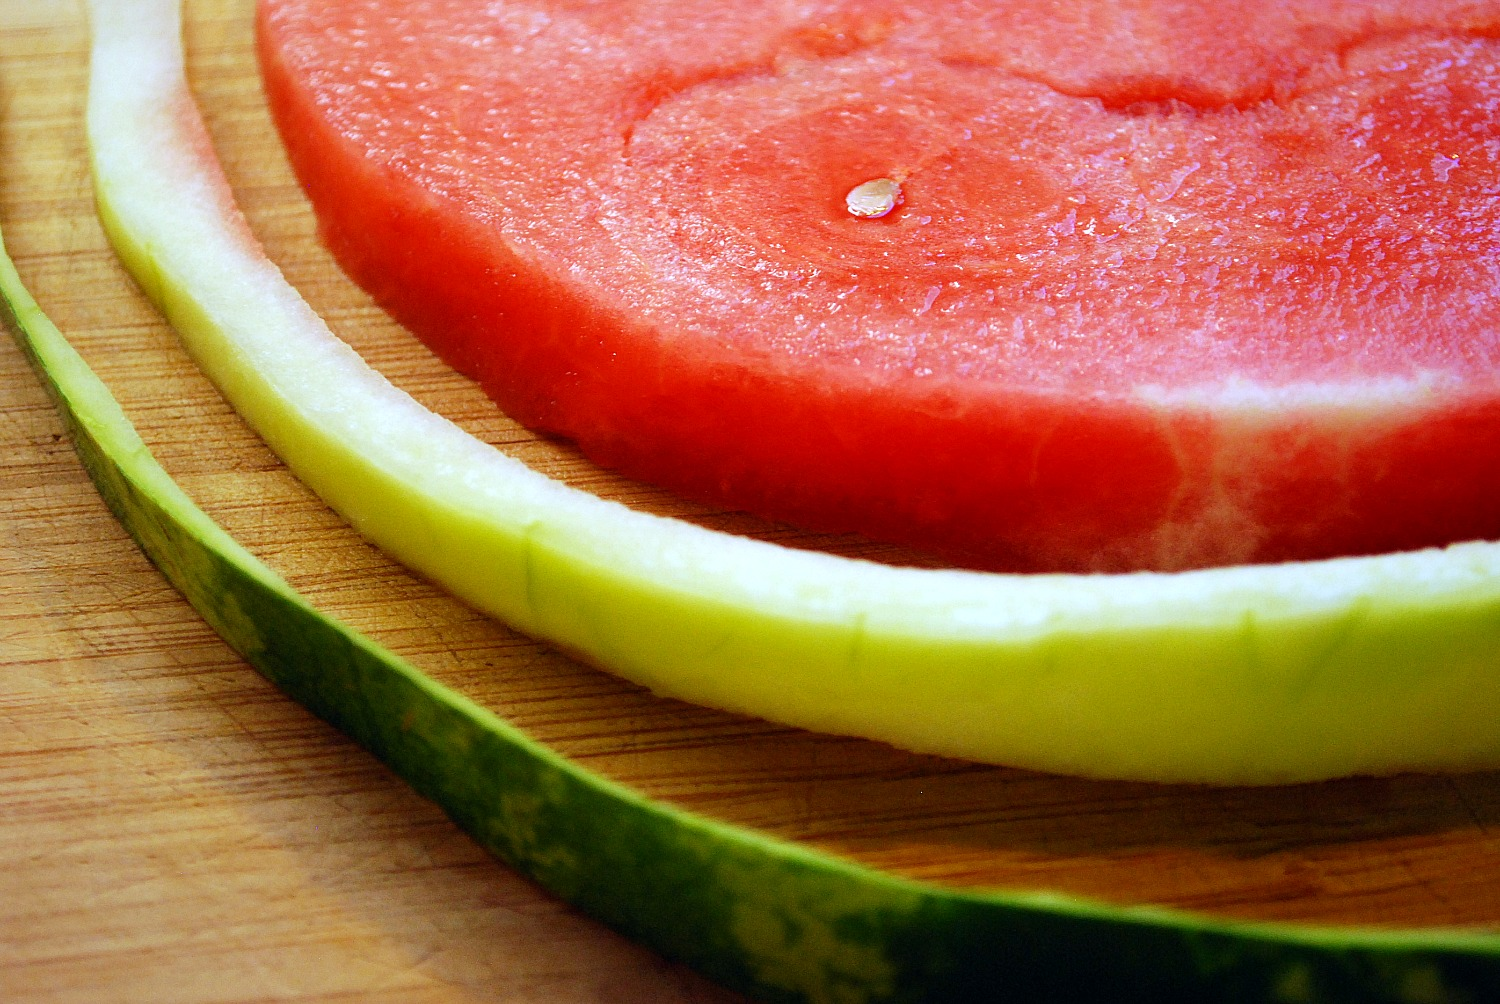 watermelon rind